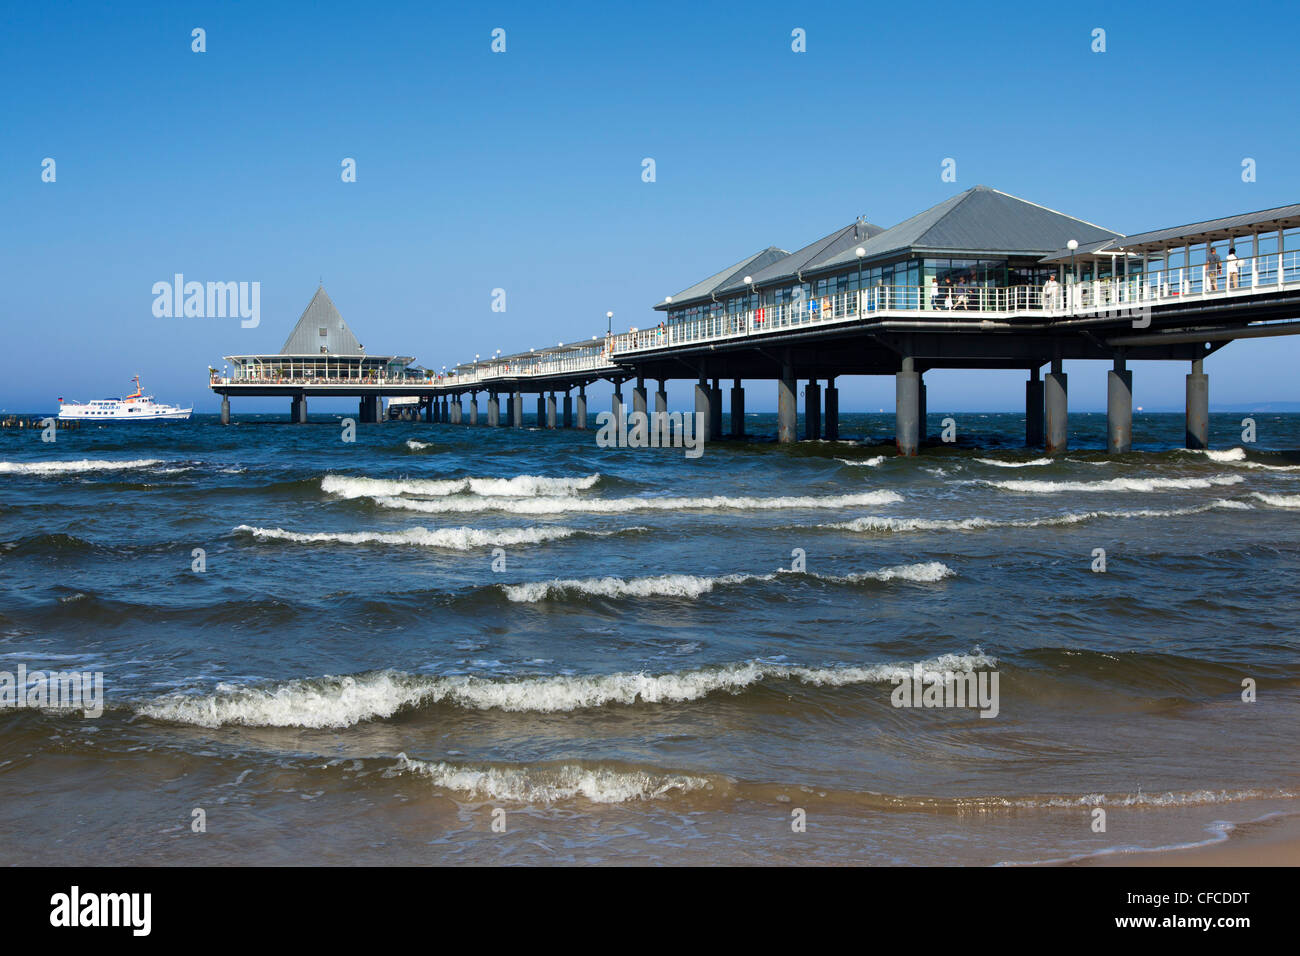 Pier at Heringsdorf seaside resort, Usedom island, Baltic Sea, Mecklenburg-West Pomerania, Germany - Stock Image